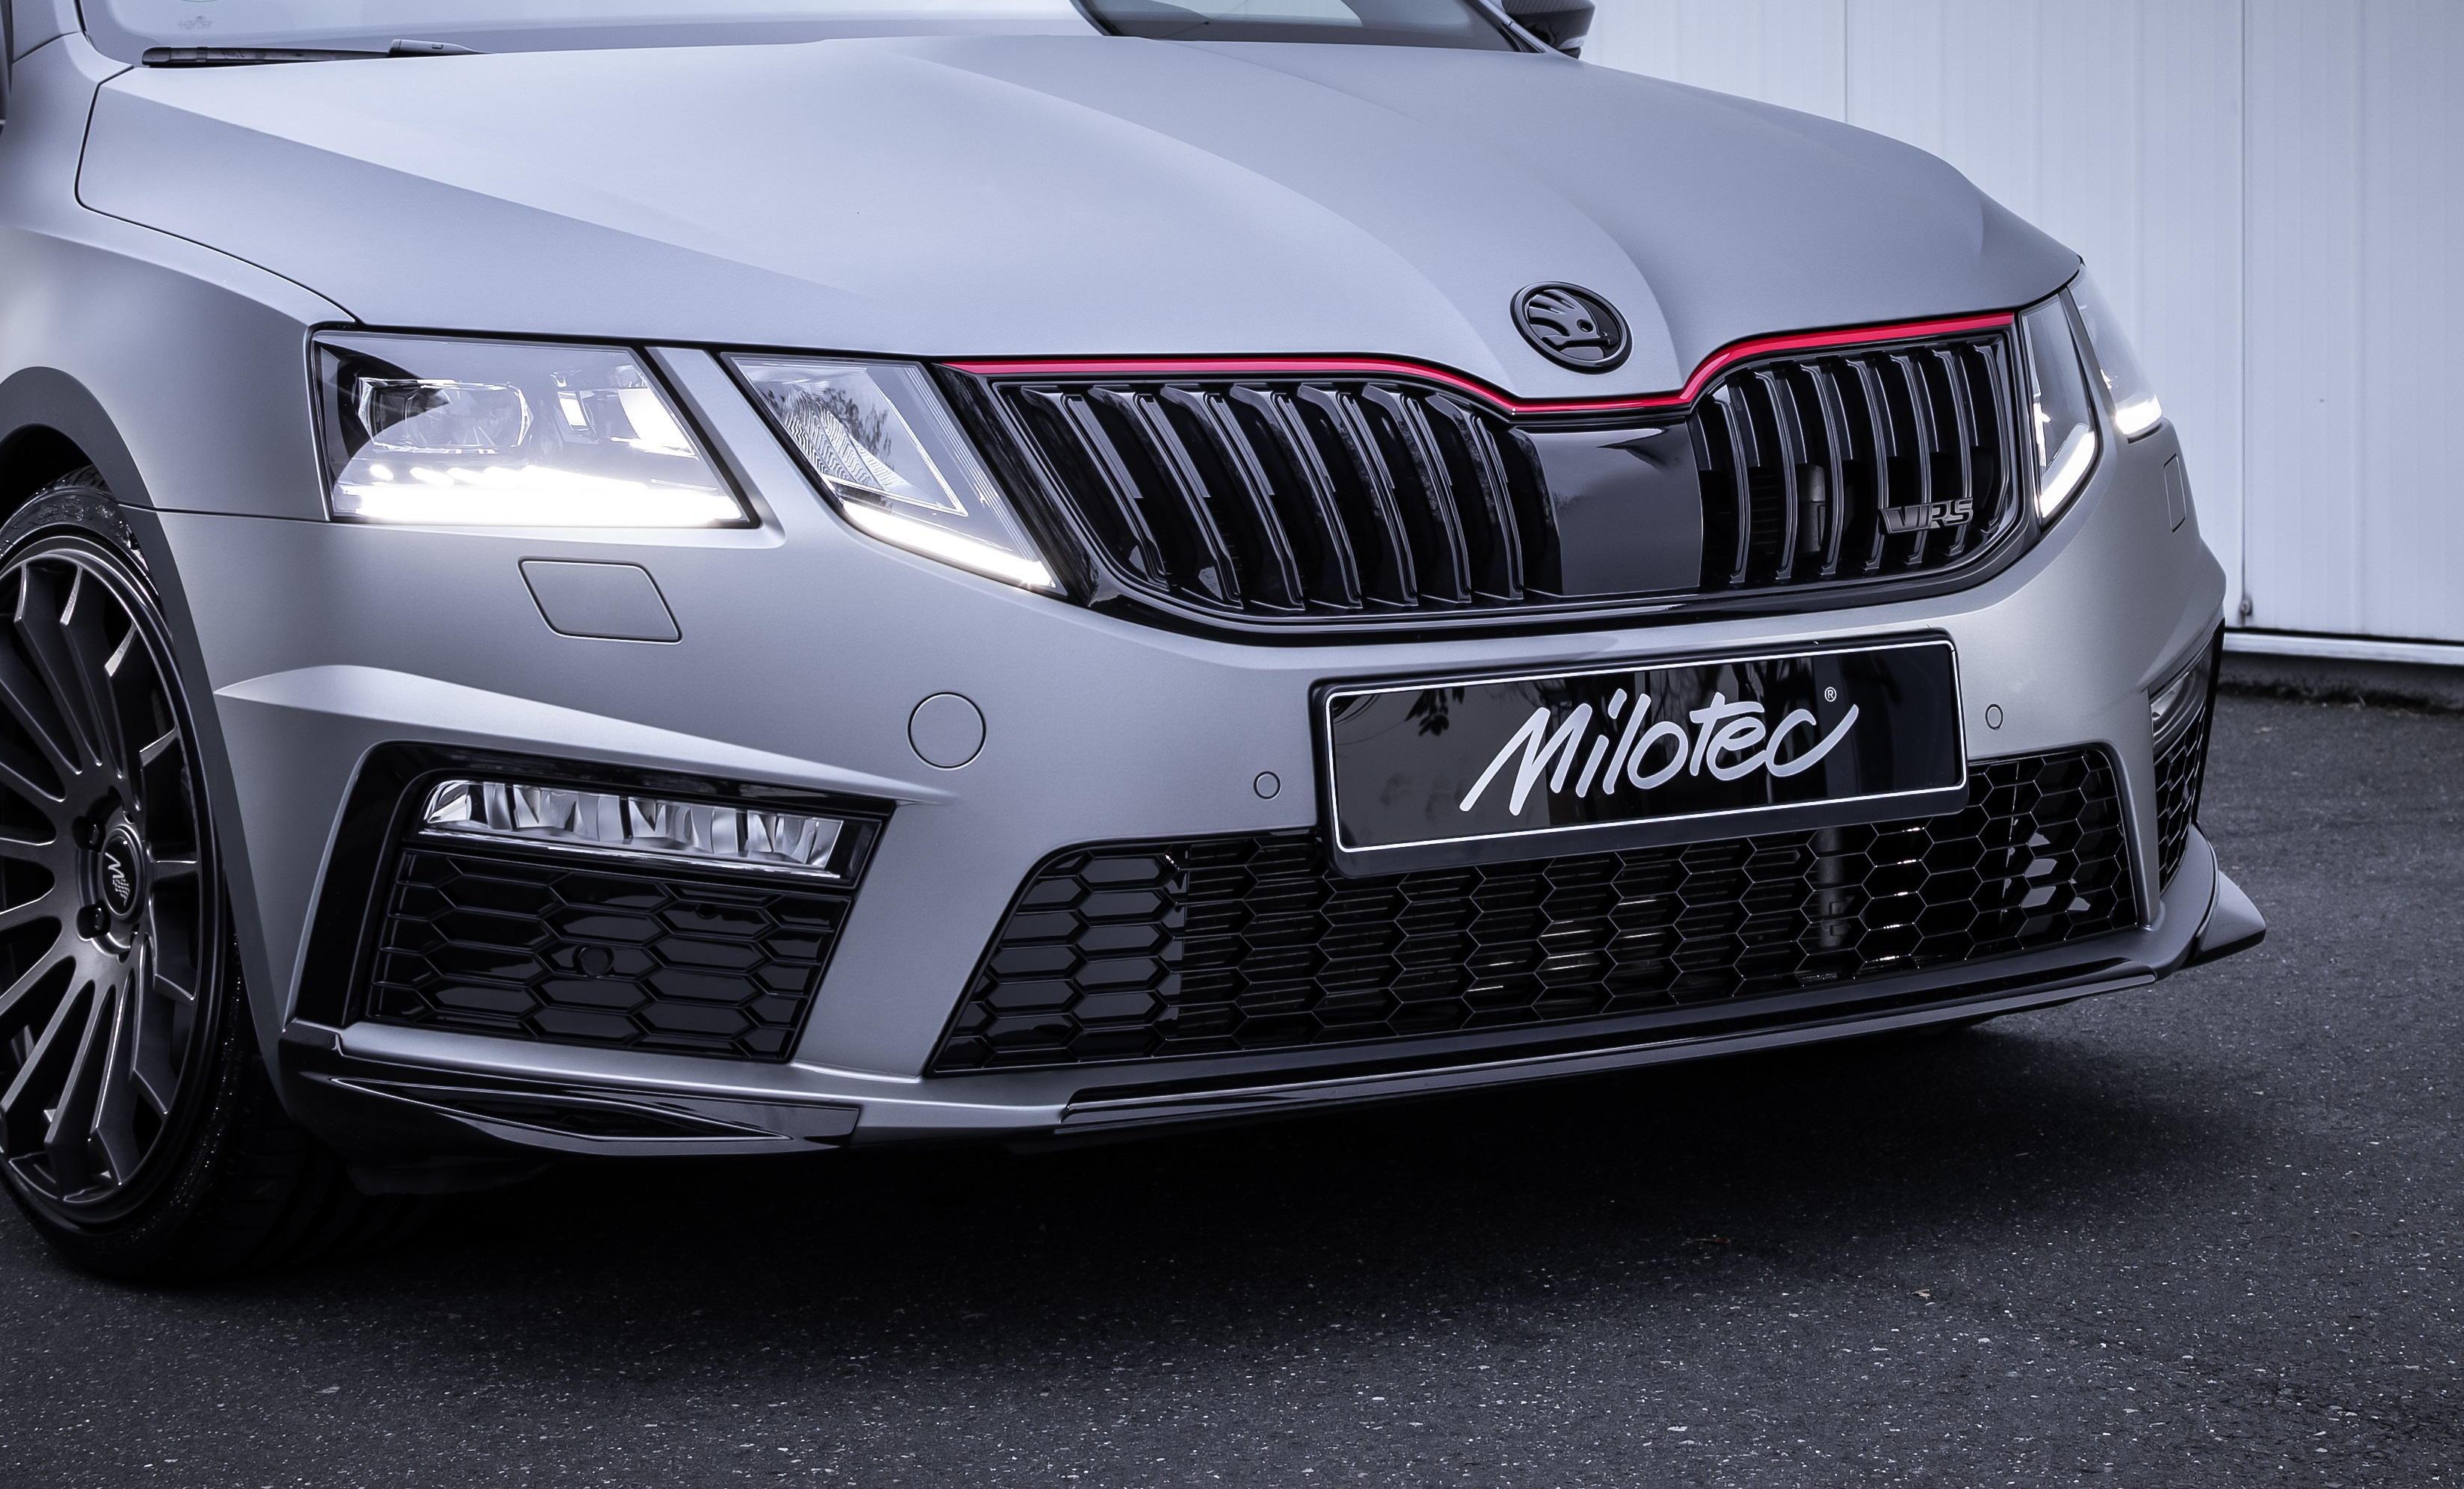 Milotec Front Spoiler Lip And Edges Facelift Milotec Auto Extras Gmbh Skoda Tuning Und Zubehor